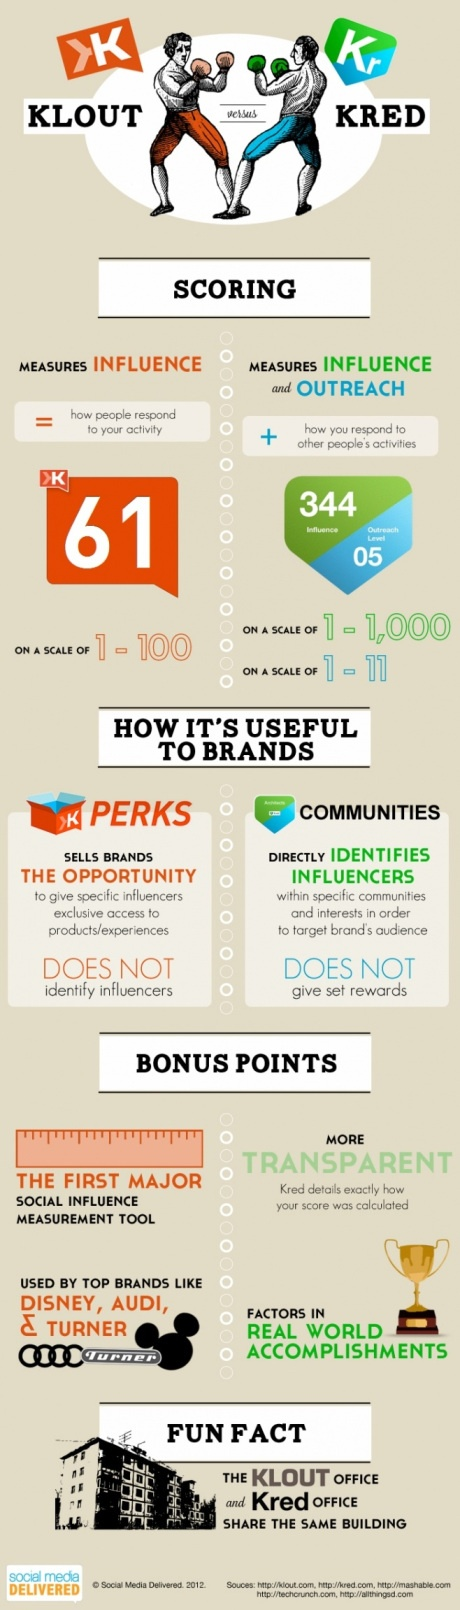 Klout Vs Kred Which is the difference between Klout and Kred? #infografics | Diferencia entre Klout y Kred #infografía  http://socialmediaelearning.wordpress.com/2013/06/05/which-is-the-difference-between-klout-and-kred-infografics/